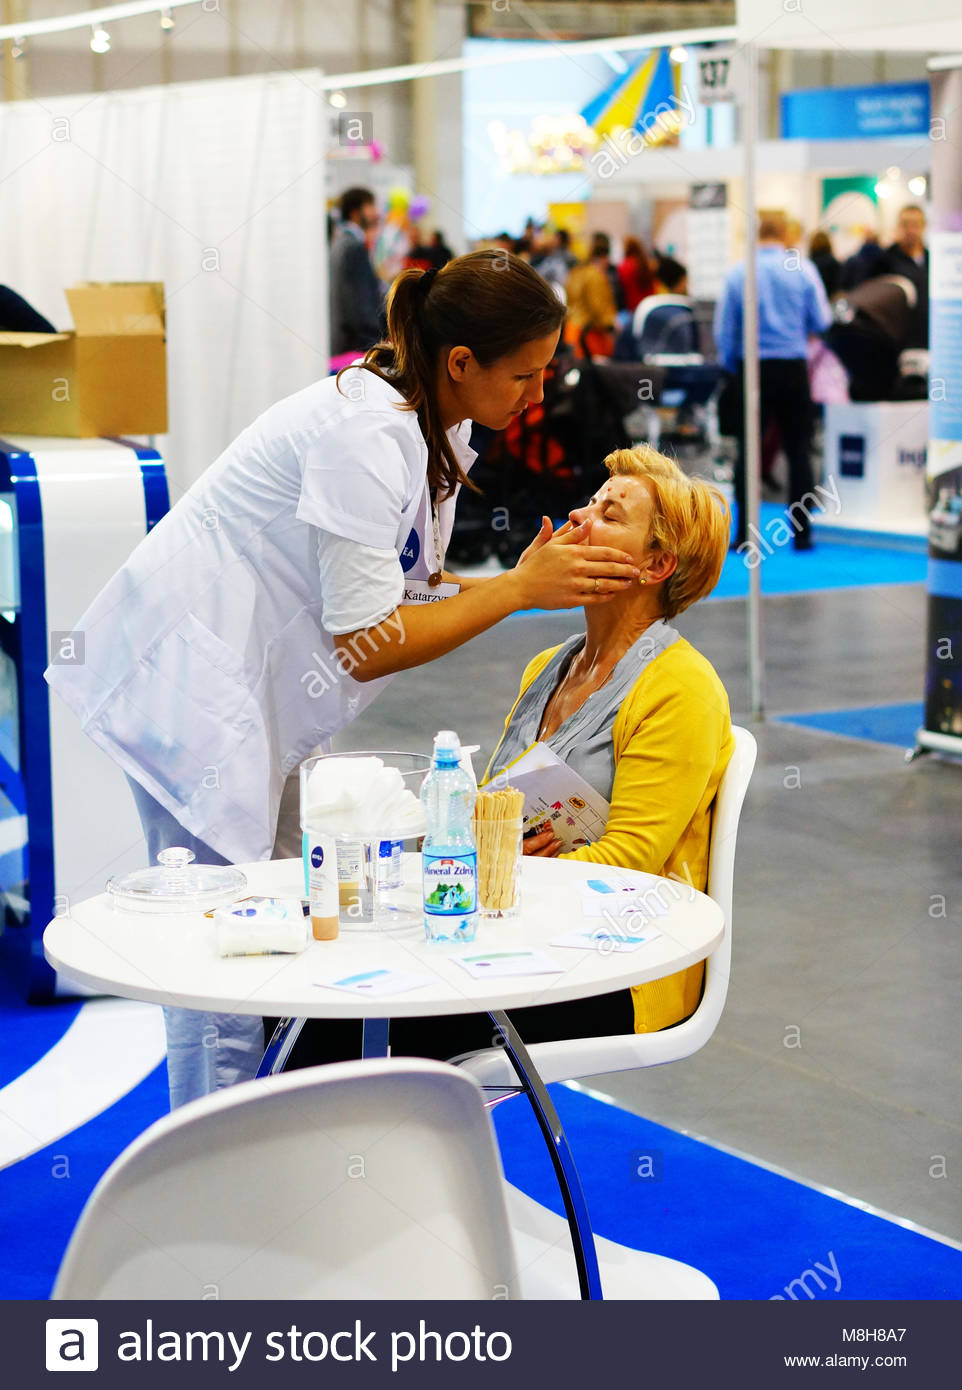 POZNAN, POLAND - OCTOBER 19, 2013: Woman having a face treatment at a Nivea stand in a fair trade - Stock Image